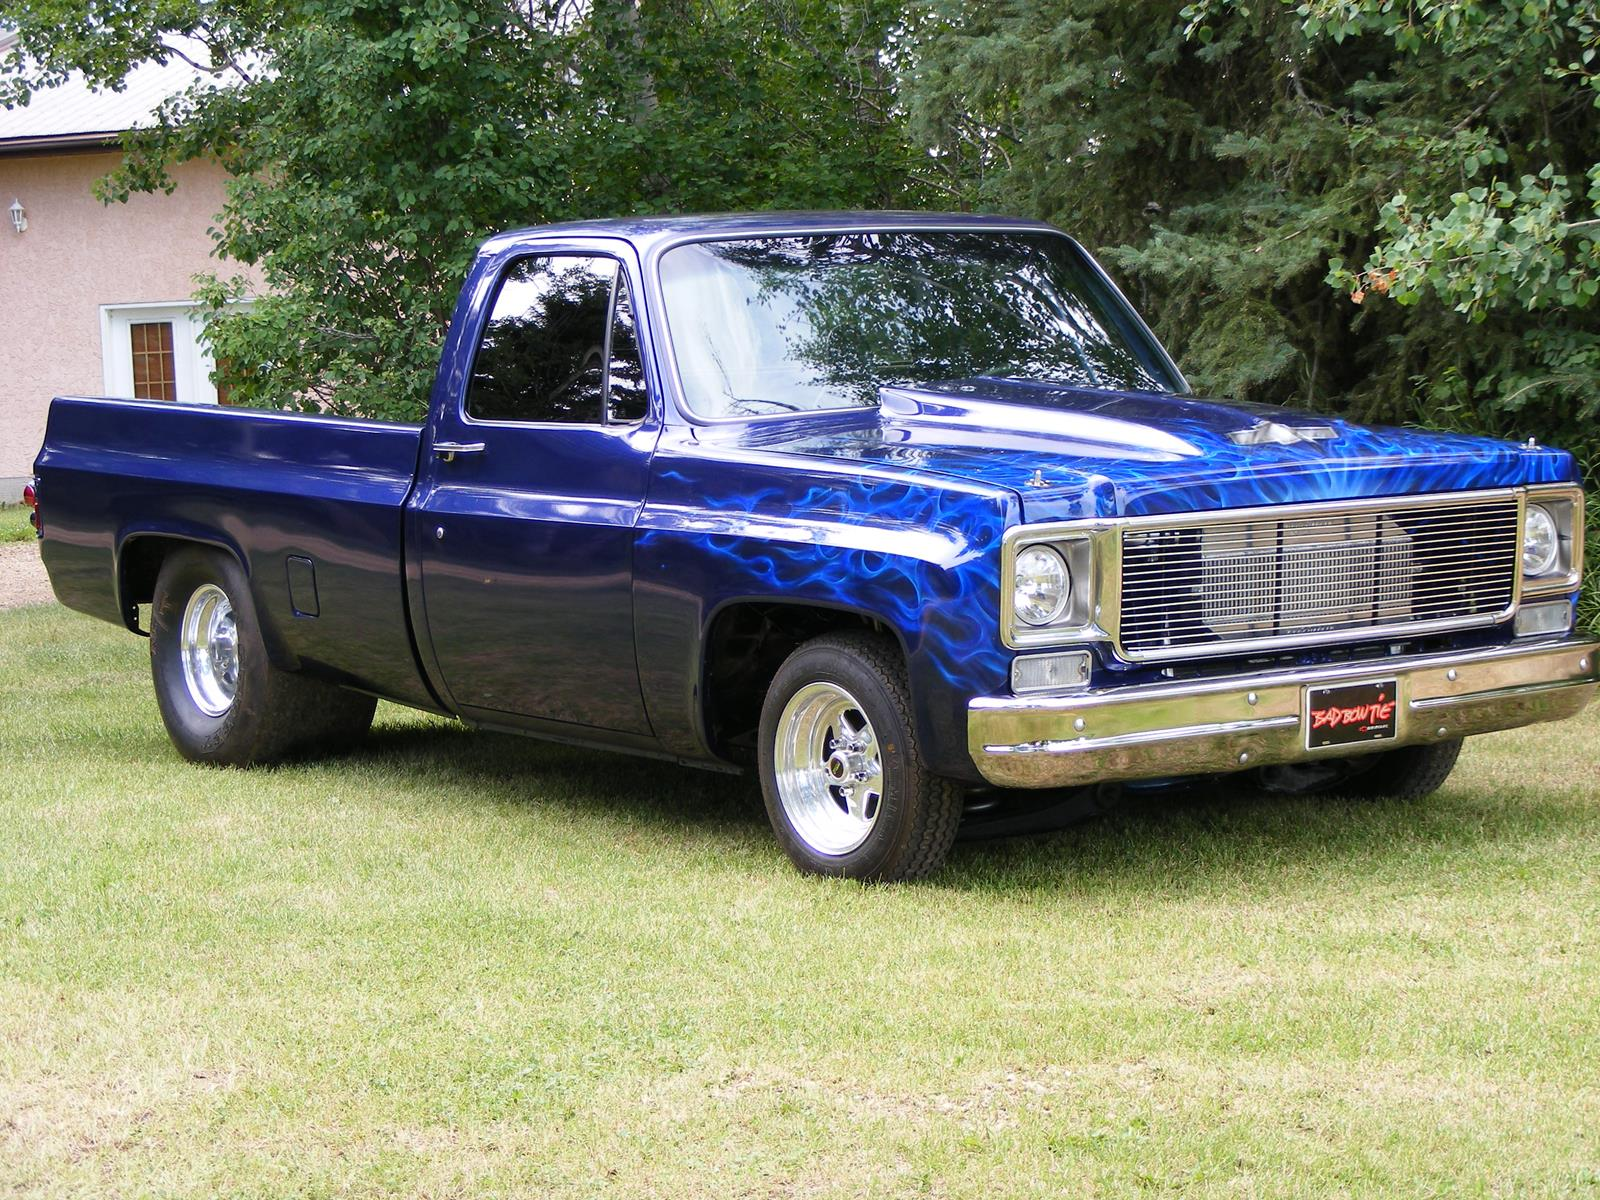 1998 Chevrolet Blazer Reviews C922 also 1967 72 Chevy C10 And Gmc Power Rack Pinion Kit Unisteer 8011650 01 in addition 1972 CHEVROLET CHEYENNE SUPER 10 PICKUP 162716 besides Showthread together with Pics Of 2015 Mustang Wagon. on 1972 gmc 1500 4x4